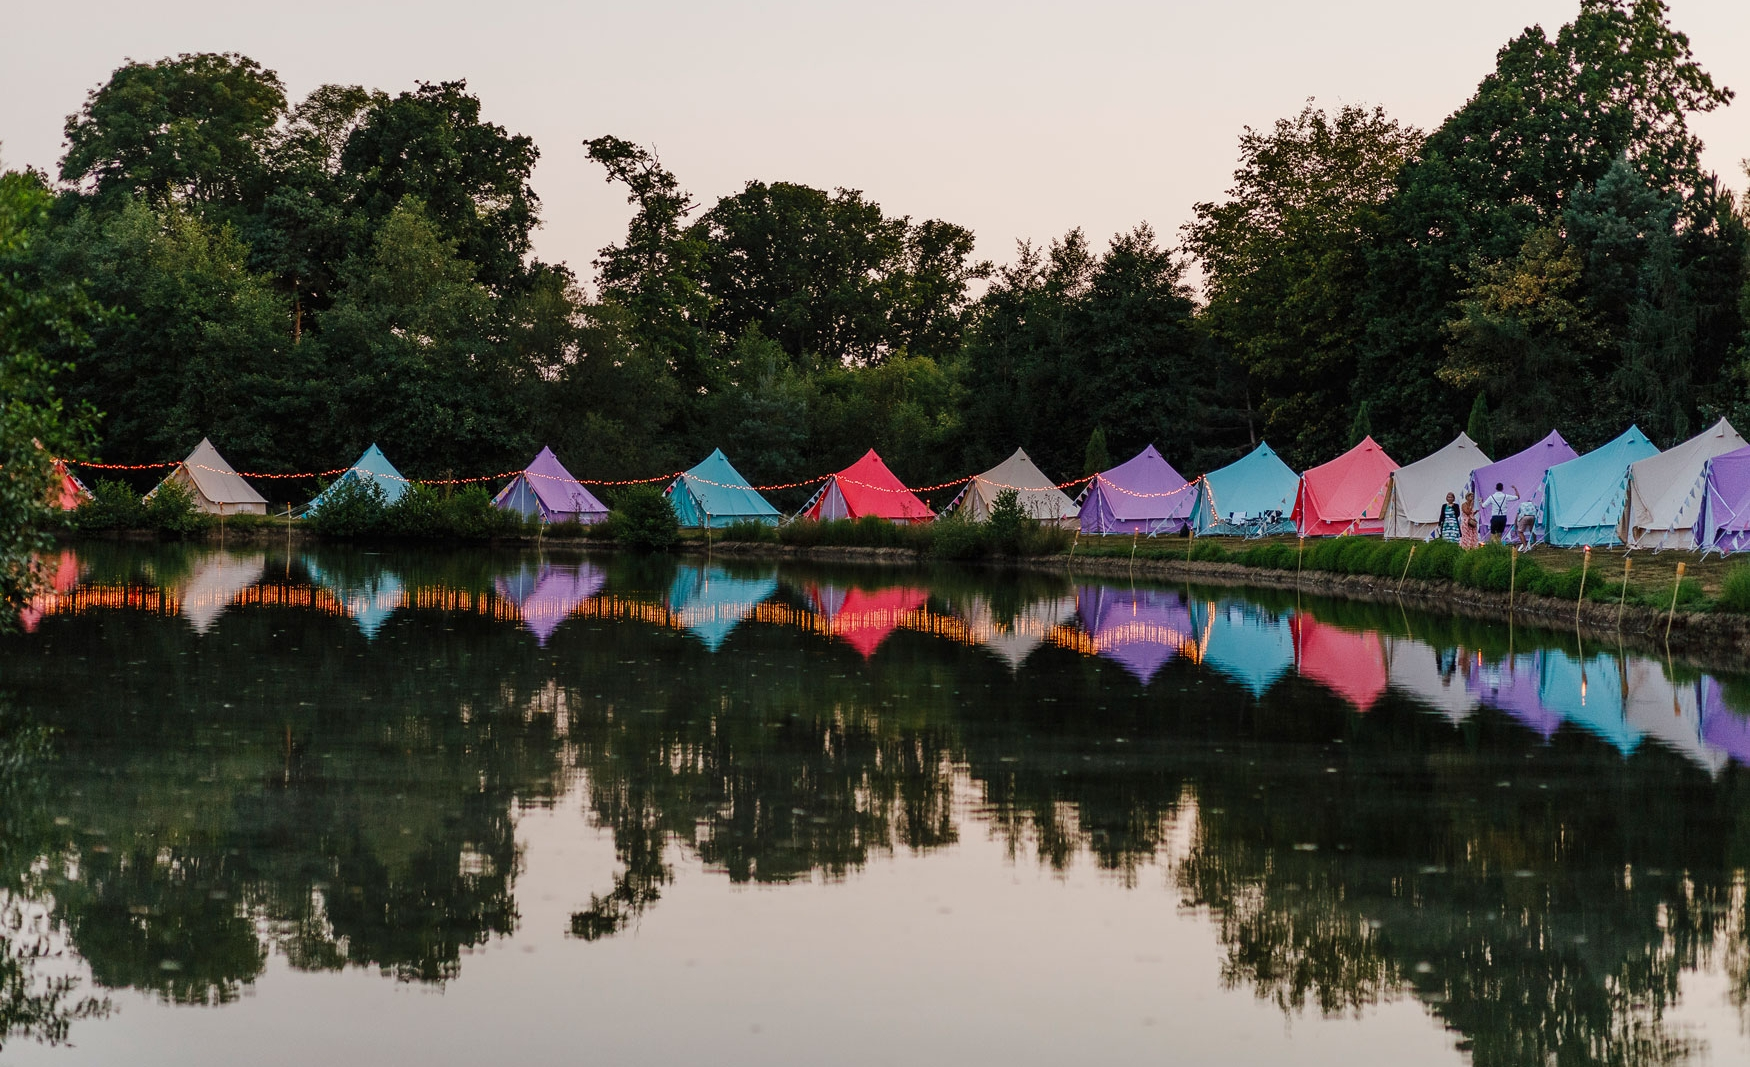 fiesta-fields-outdoor-wedding-events-company-tipi-surrey-sussex-spirit-lake-doking-7